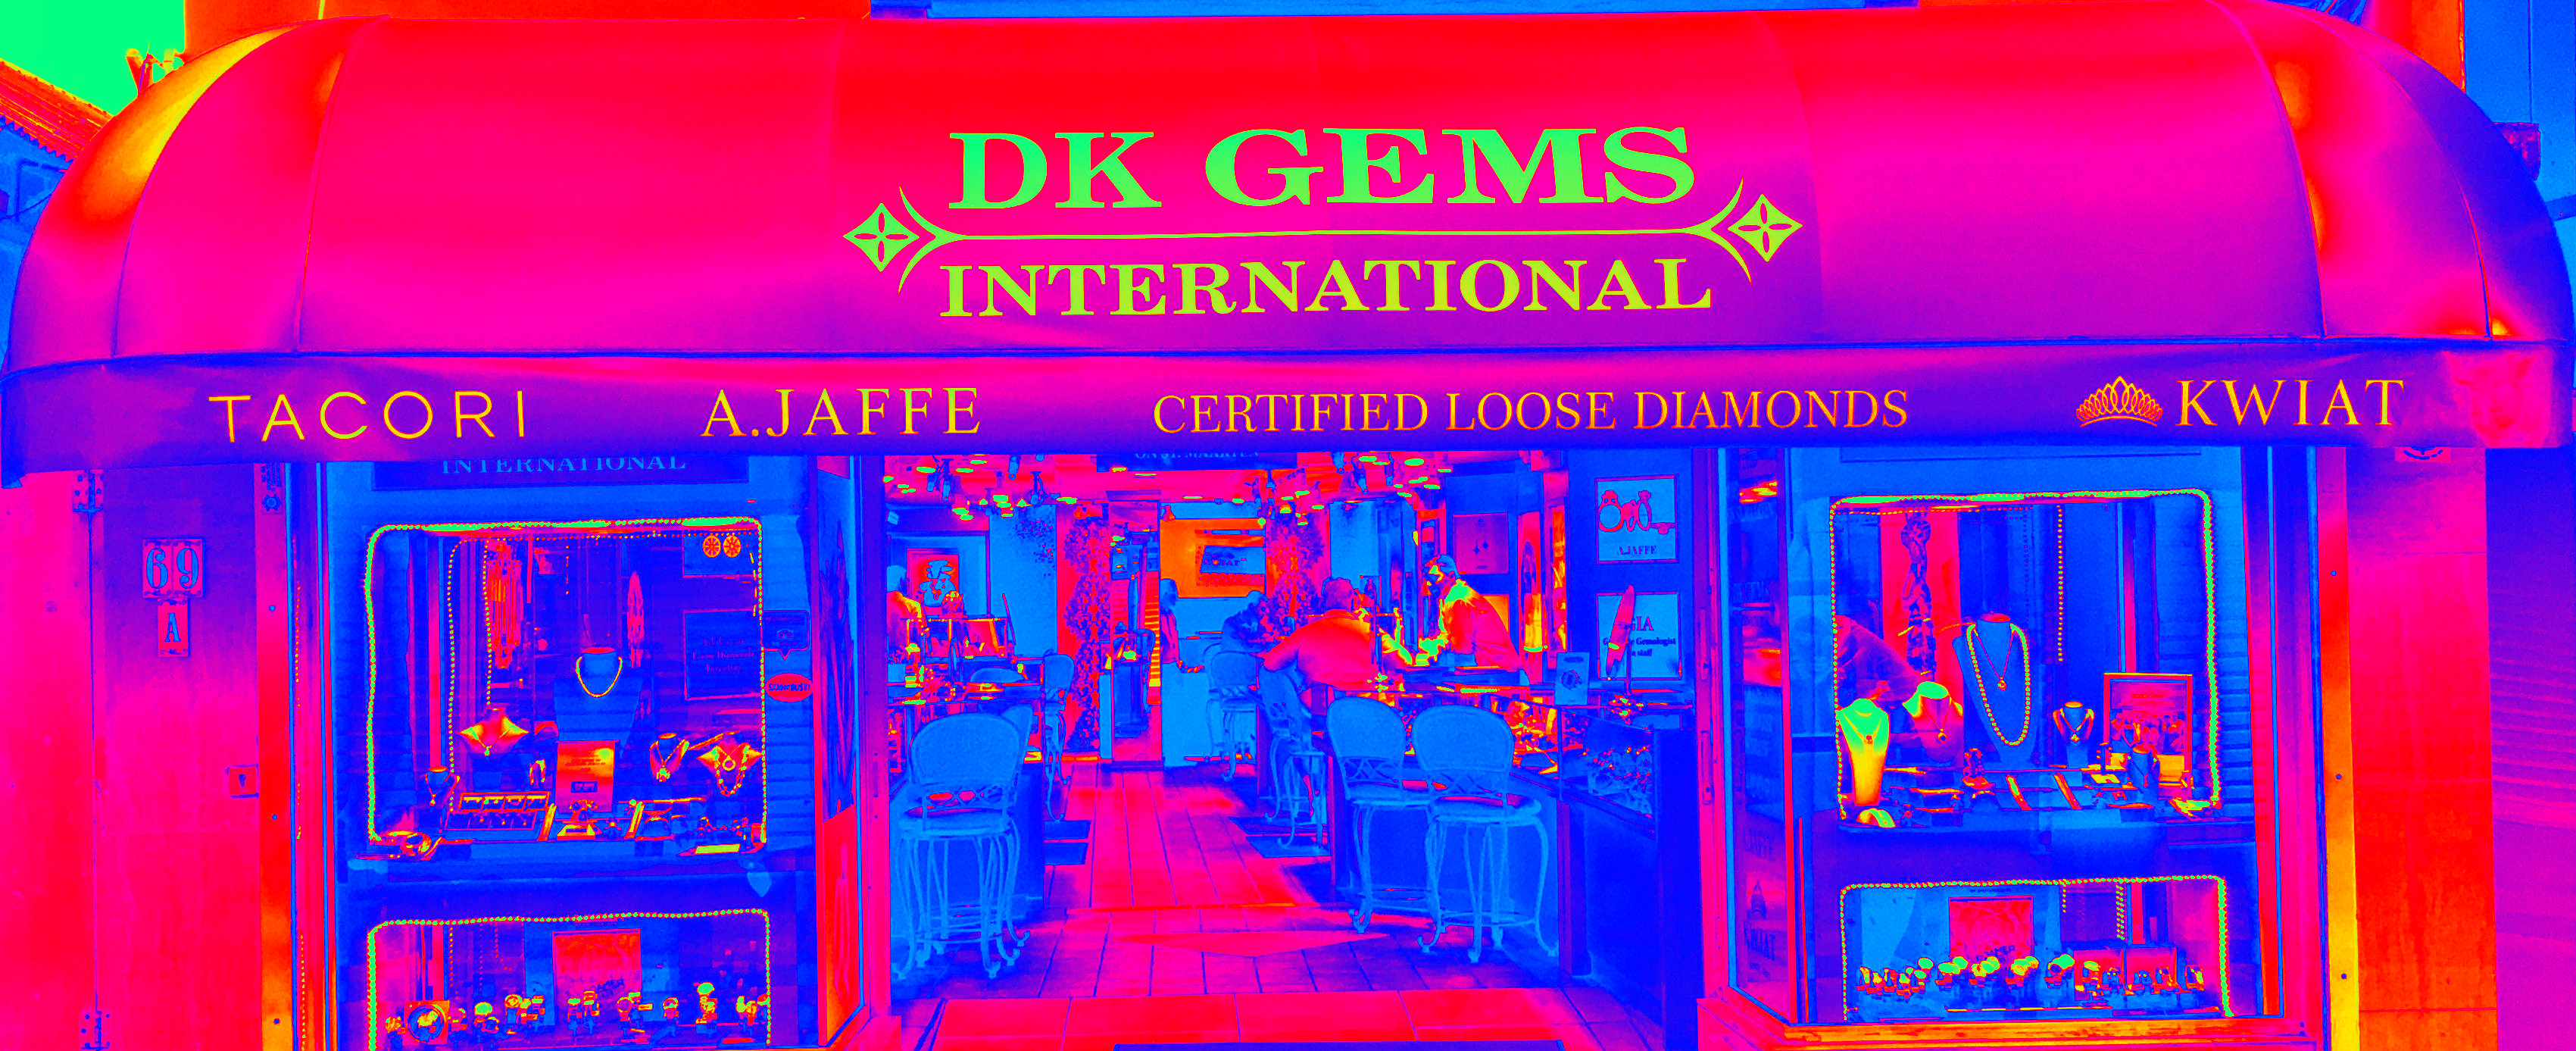 st maarten jewelry DK Gems International VOTED BEST St Maarten Jewelry stores infrared